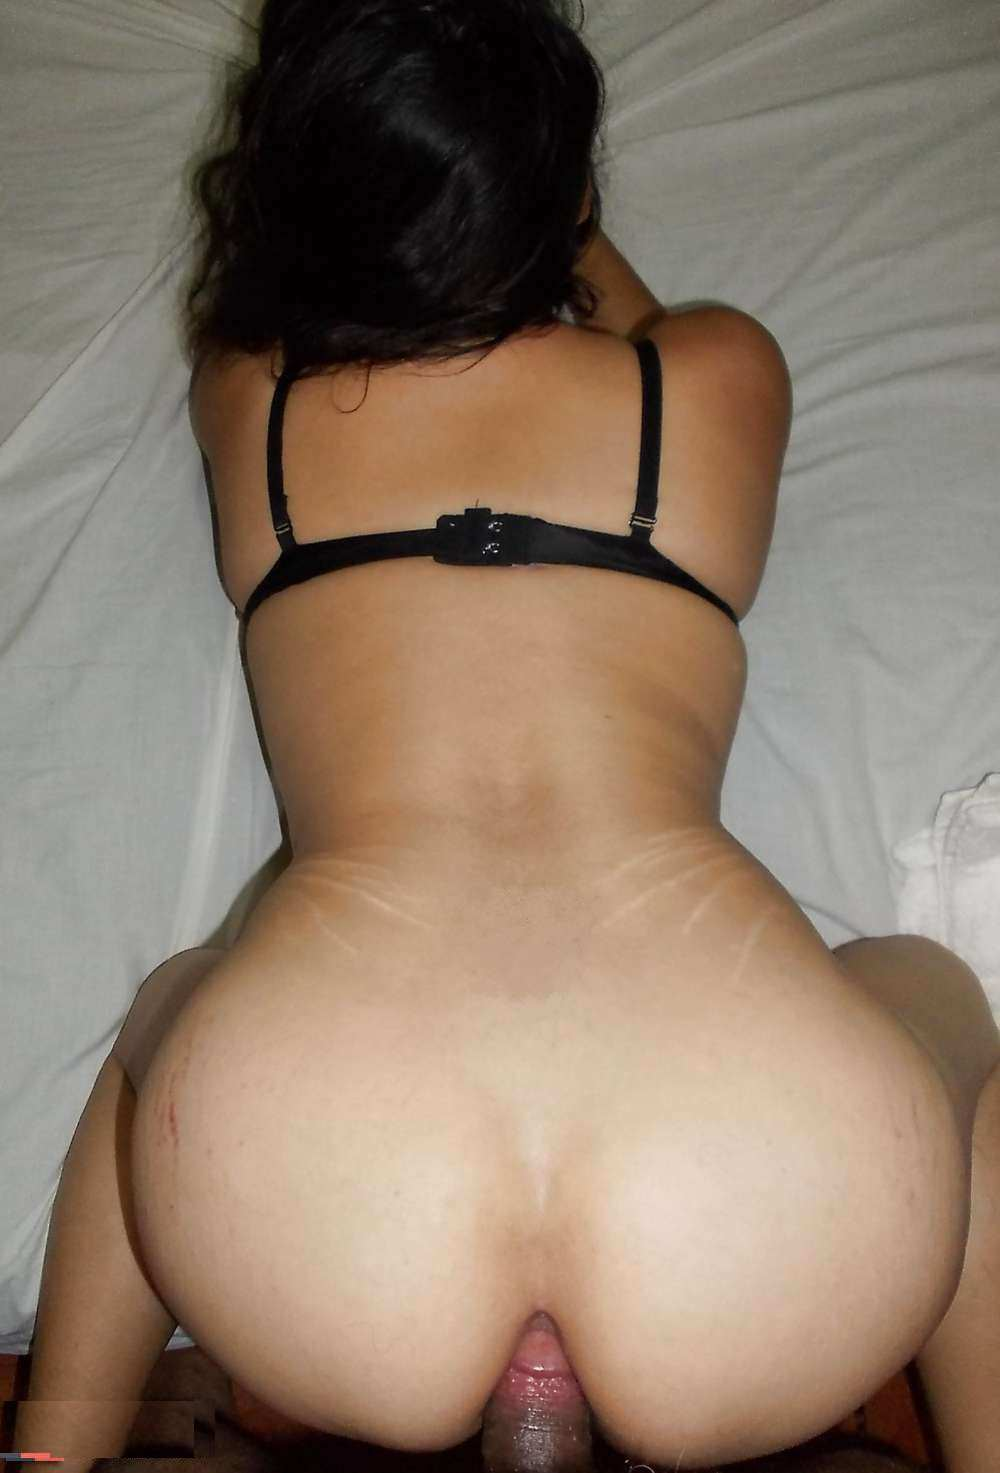 South indian real life girls nude